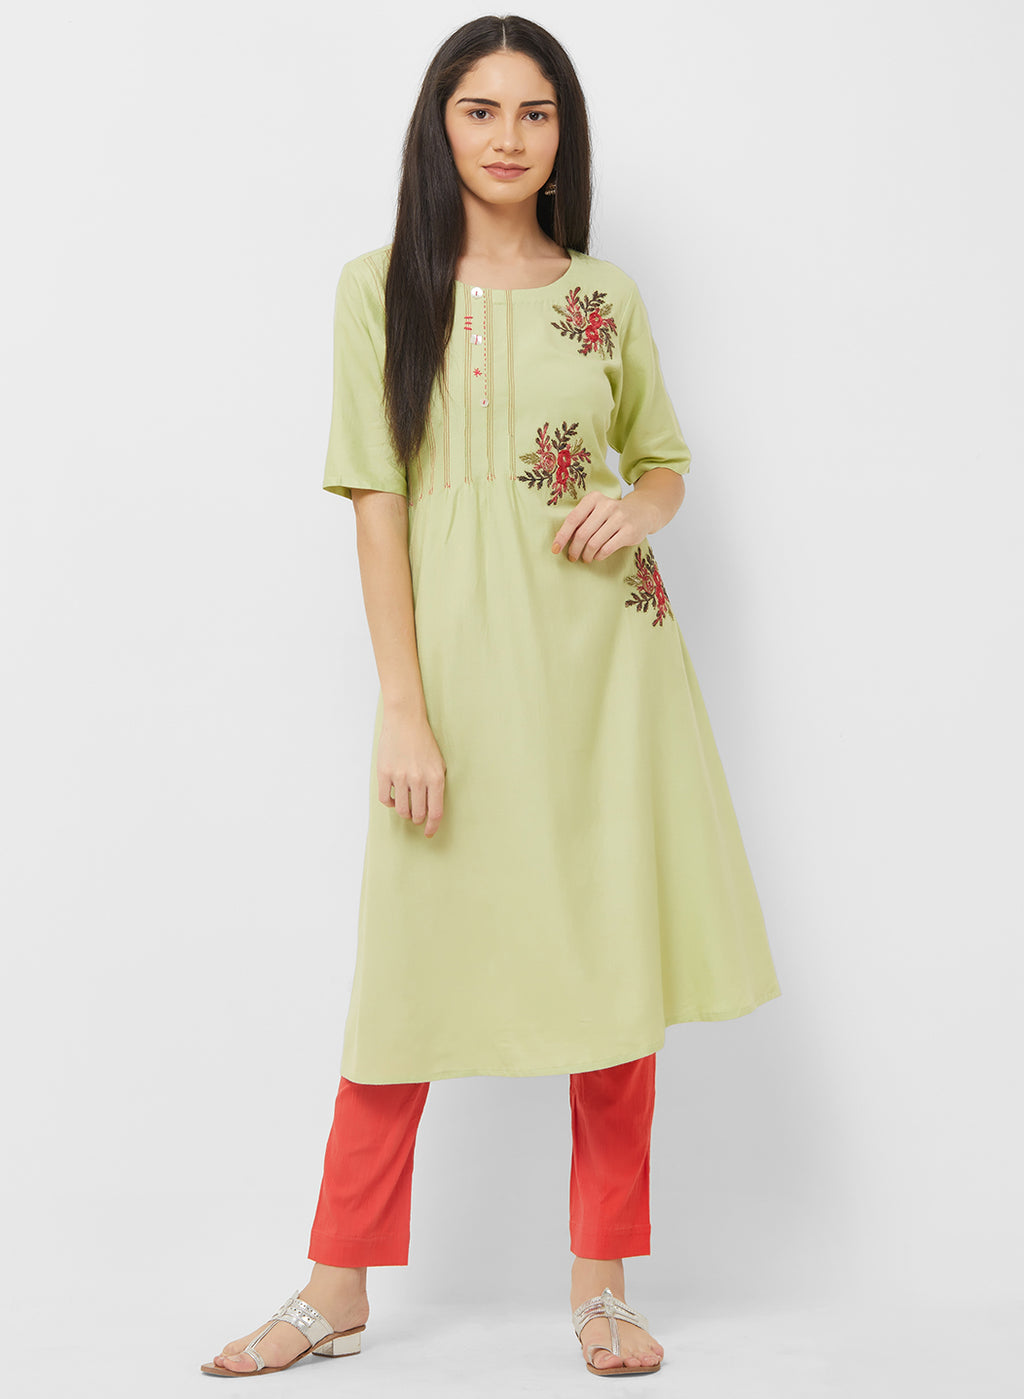 Pastel Green Color Soft Cotton Readymade Casual Party Kurtis NYF-5434